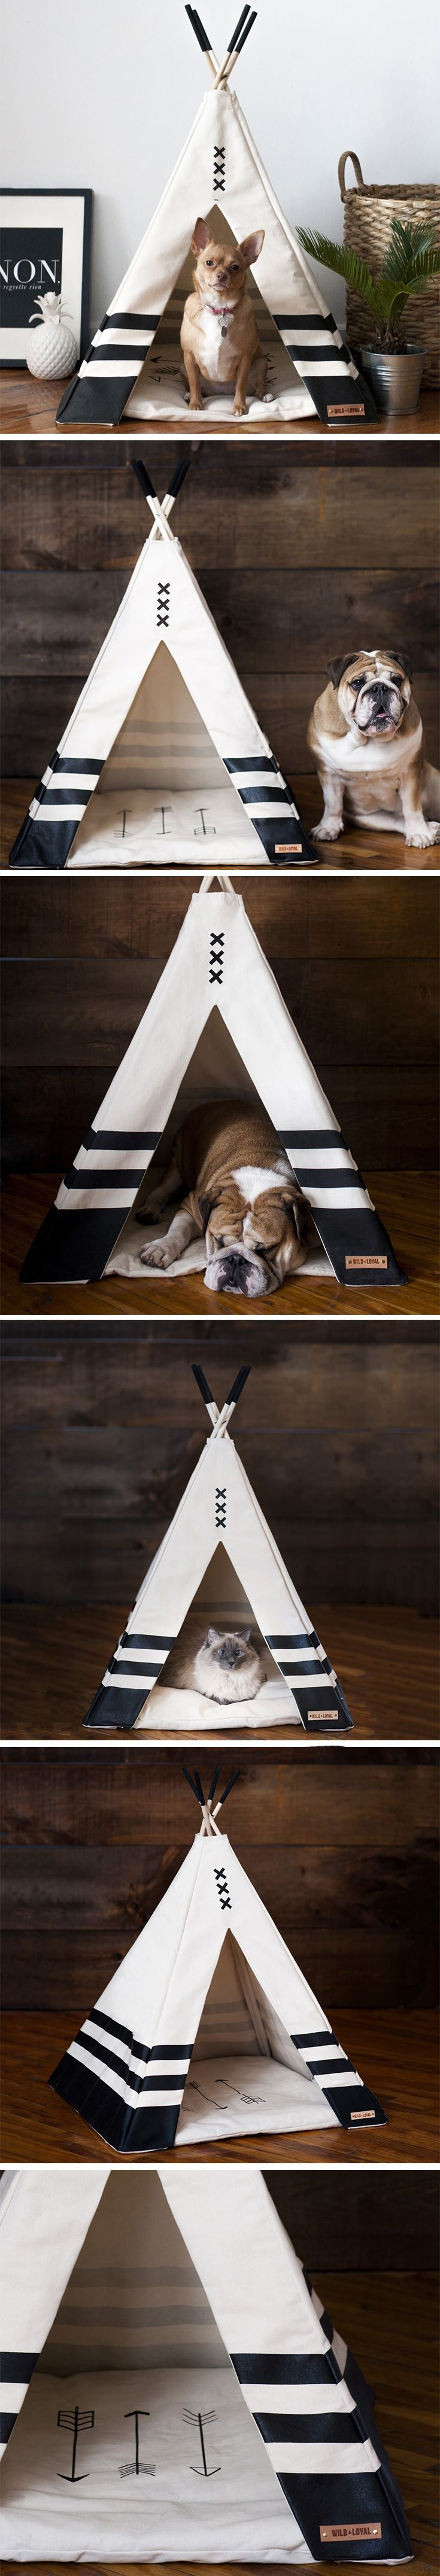 The Pet Teepee is built to add character to the home-decor, while also giving your pet a comfortable, yet visually adventurous hide-out. Handmade from wooden poles and cotton canvas fabric, the tent is easy to set up anywhere and provides a cool and comfortable pet-haven.